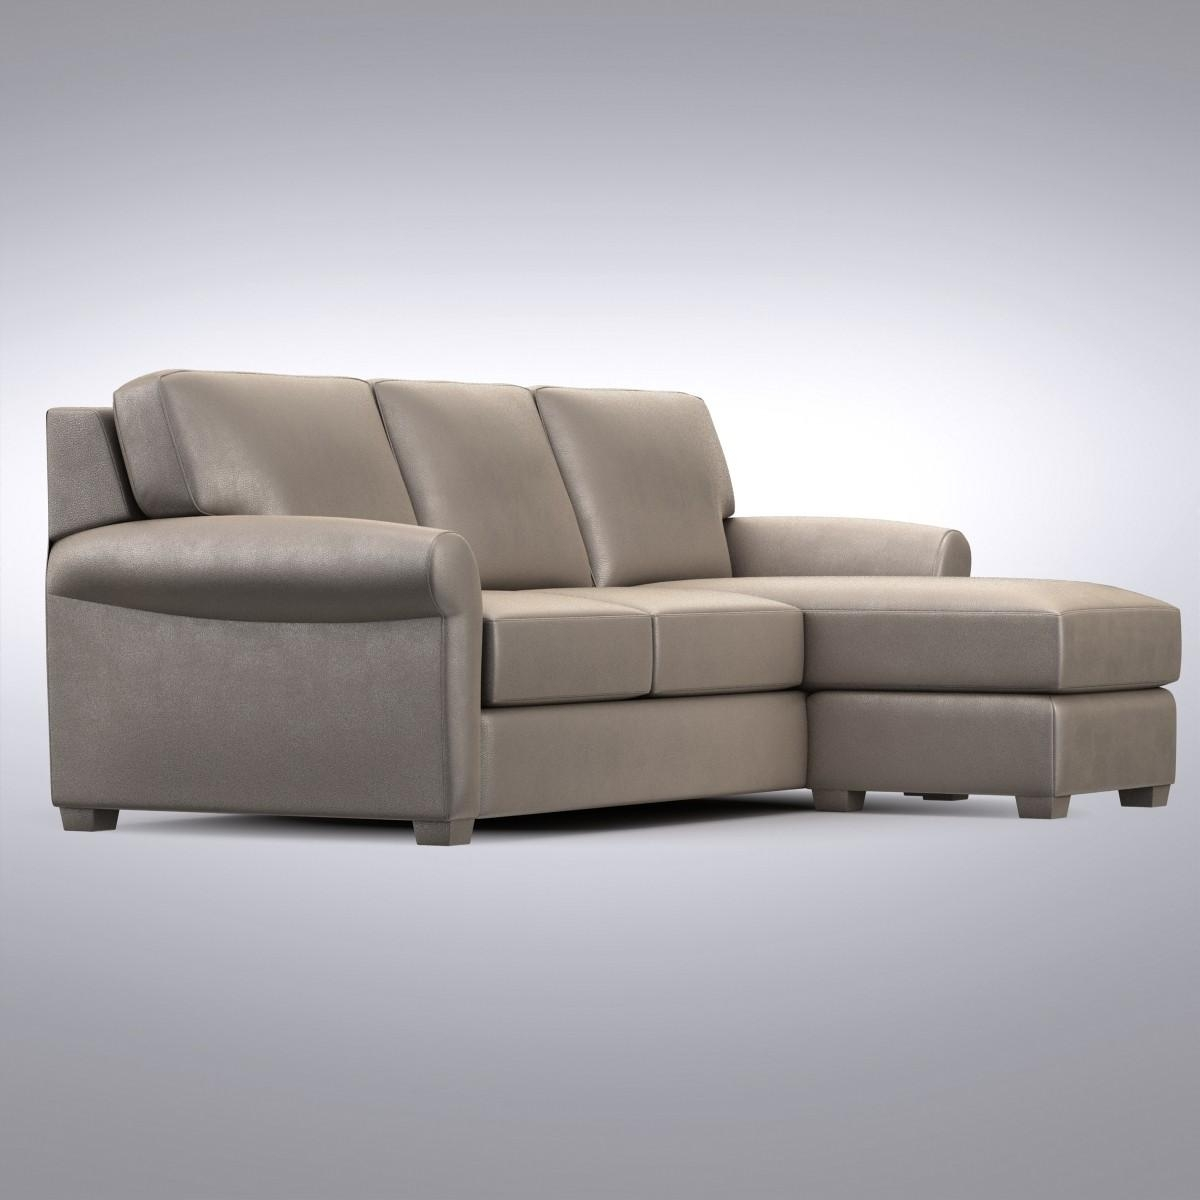 crate and barrel karnes sleeper sofa review small loveseat bed 20 inspirations sleepers ideas